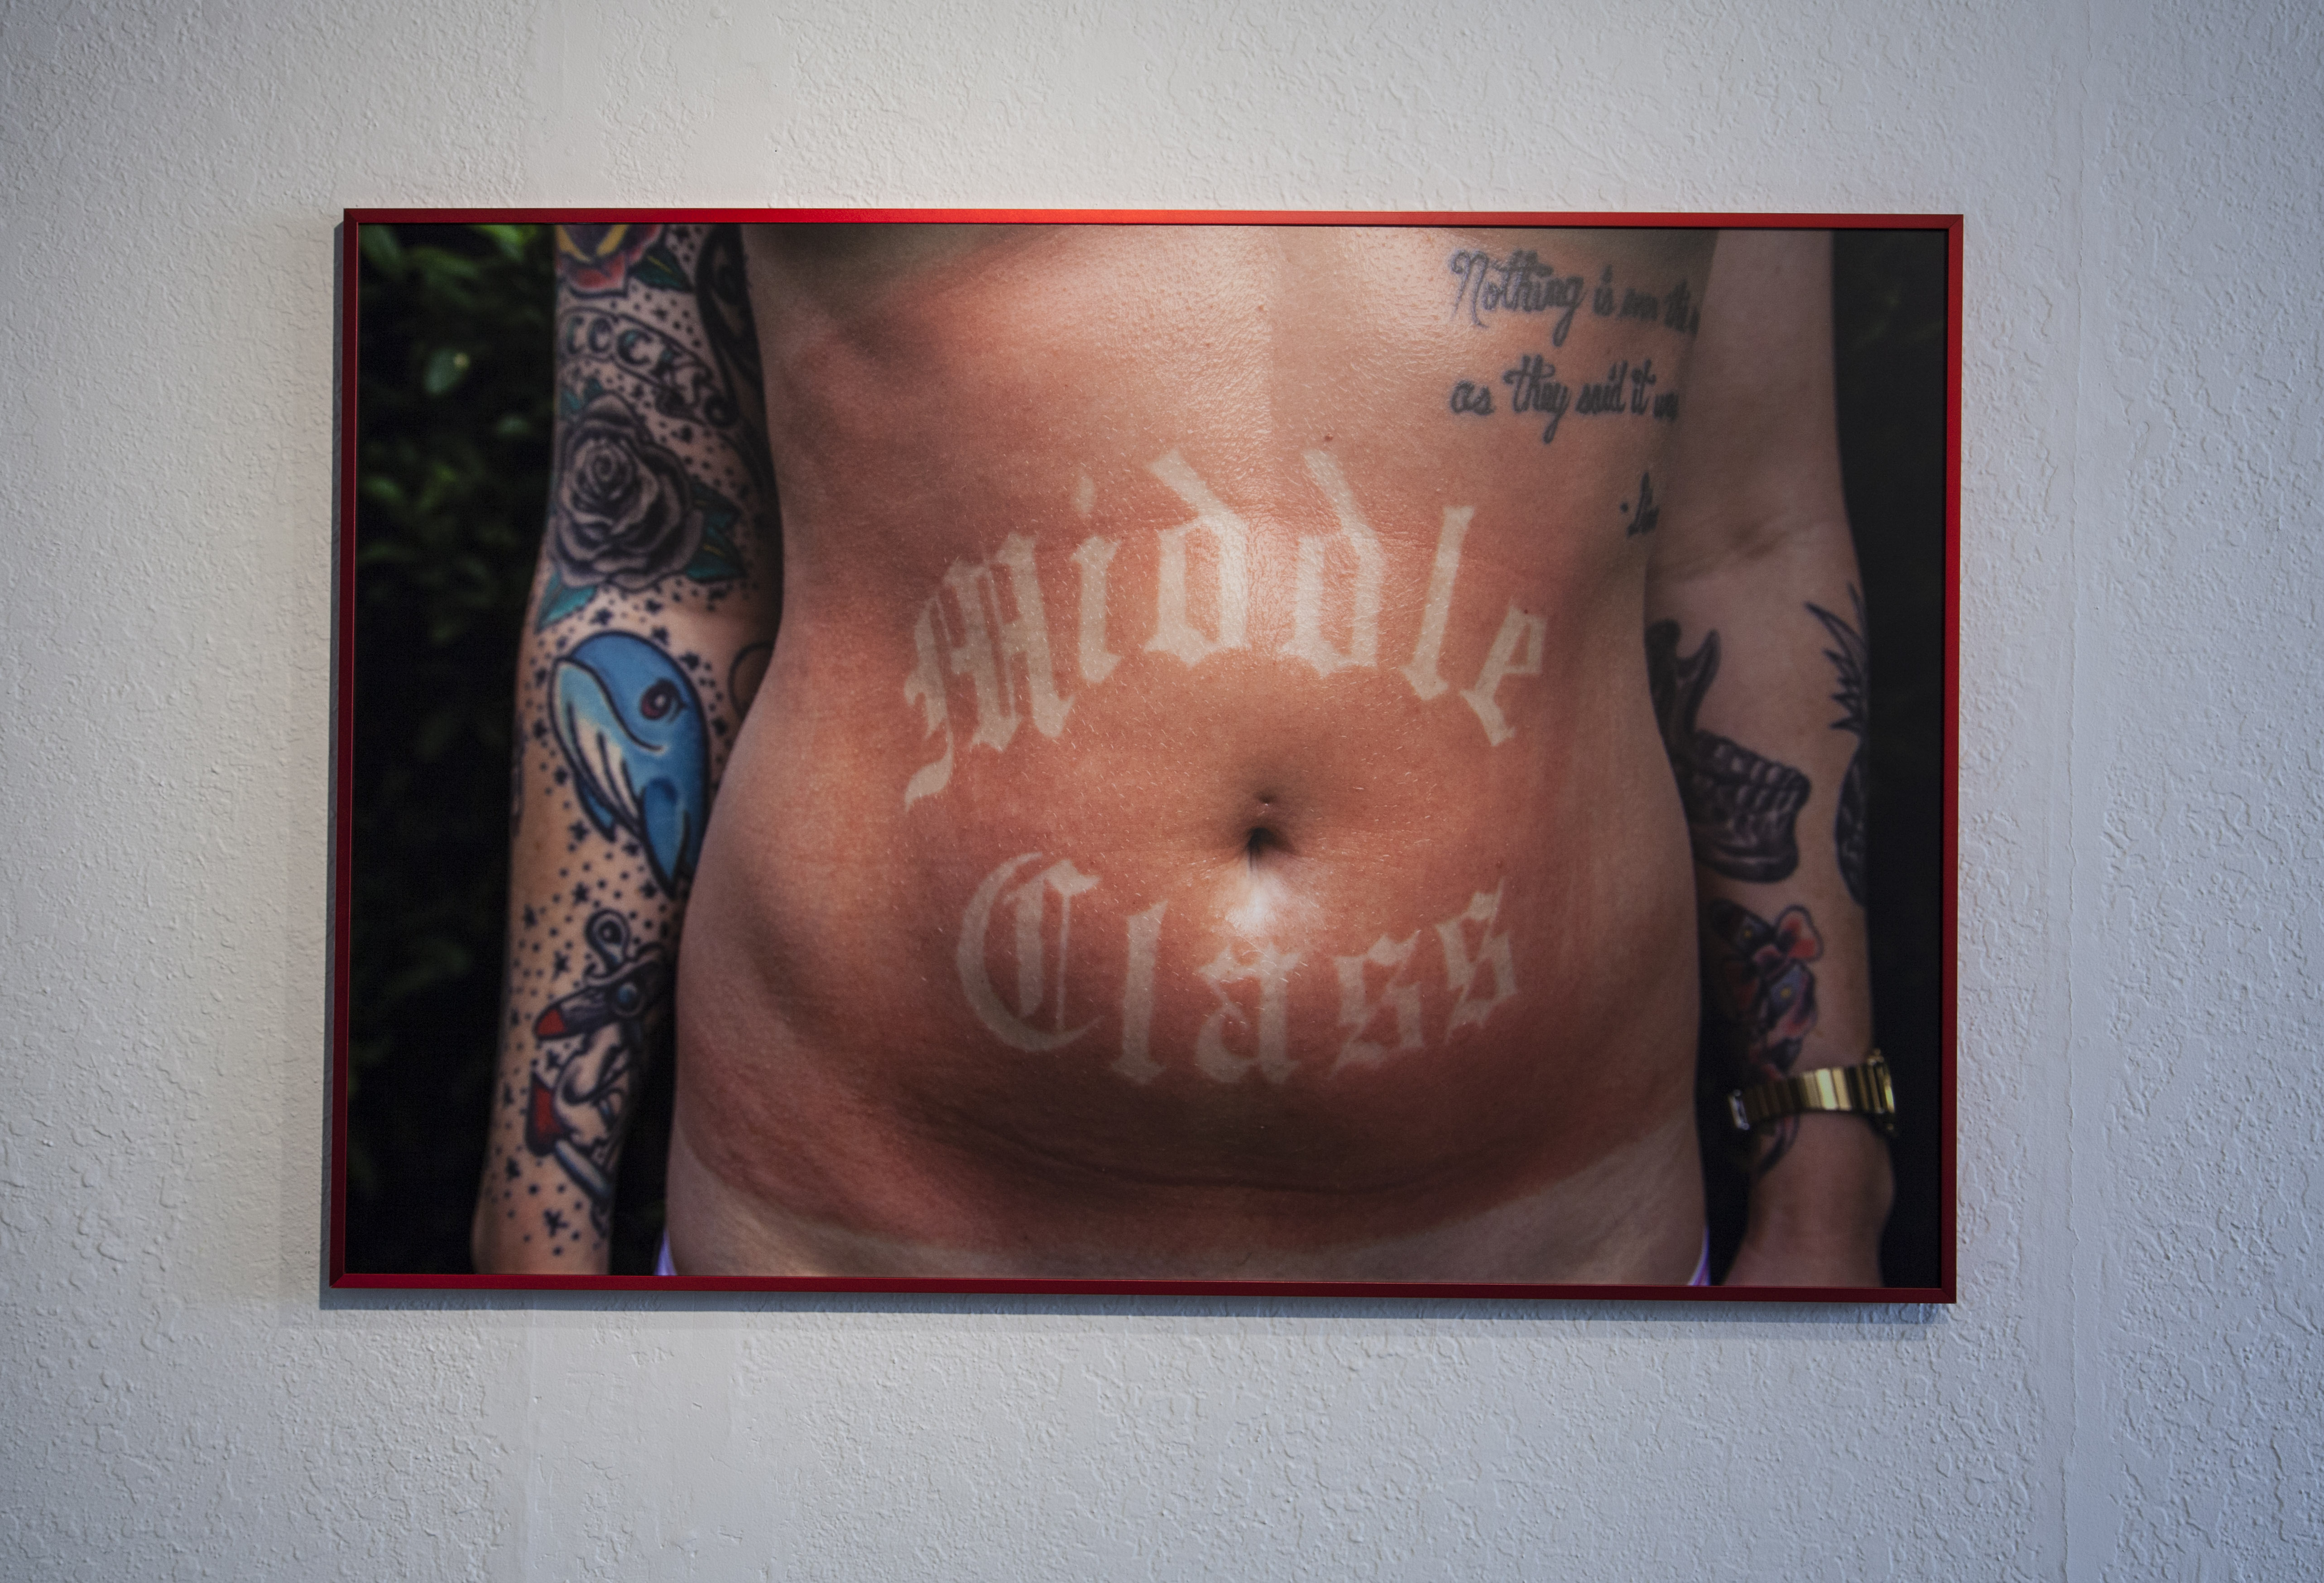 Your Middle Class Is Showing (middle class), 2016. Archival inkjet print mounted on aluminum.